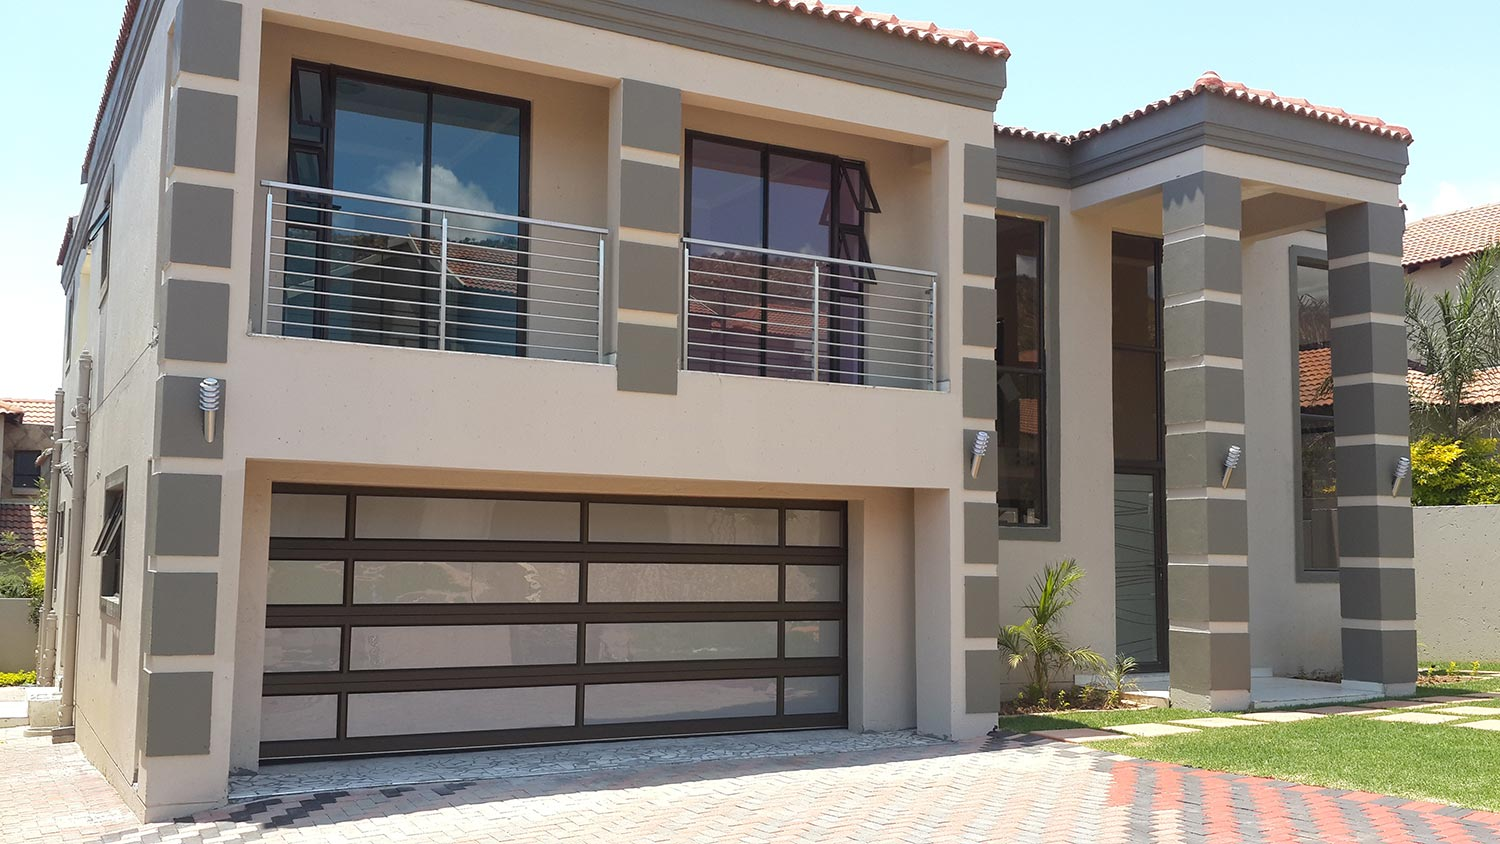 Manufactures and installer of Aluminium windows and Glass fit: